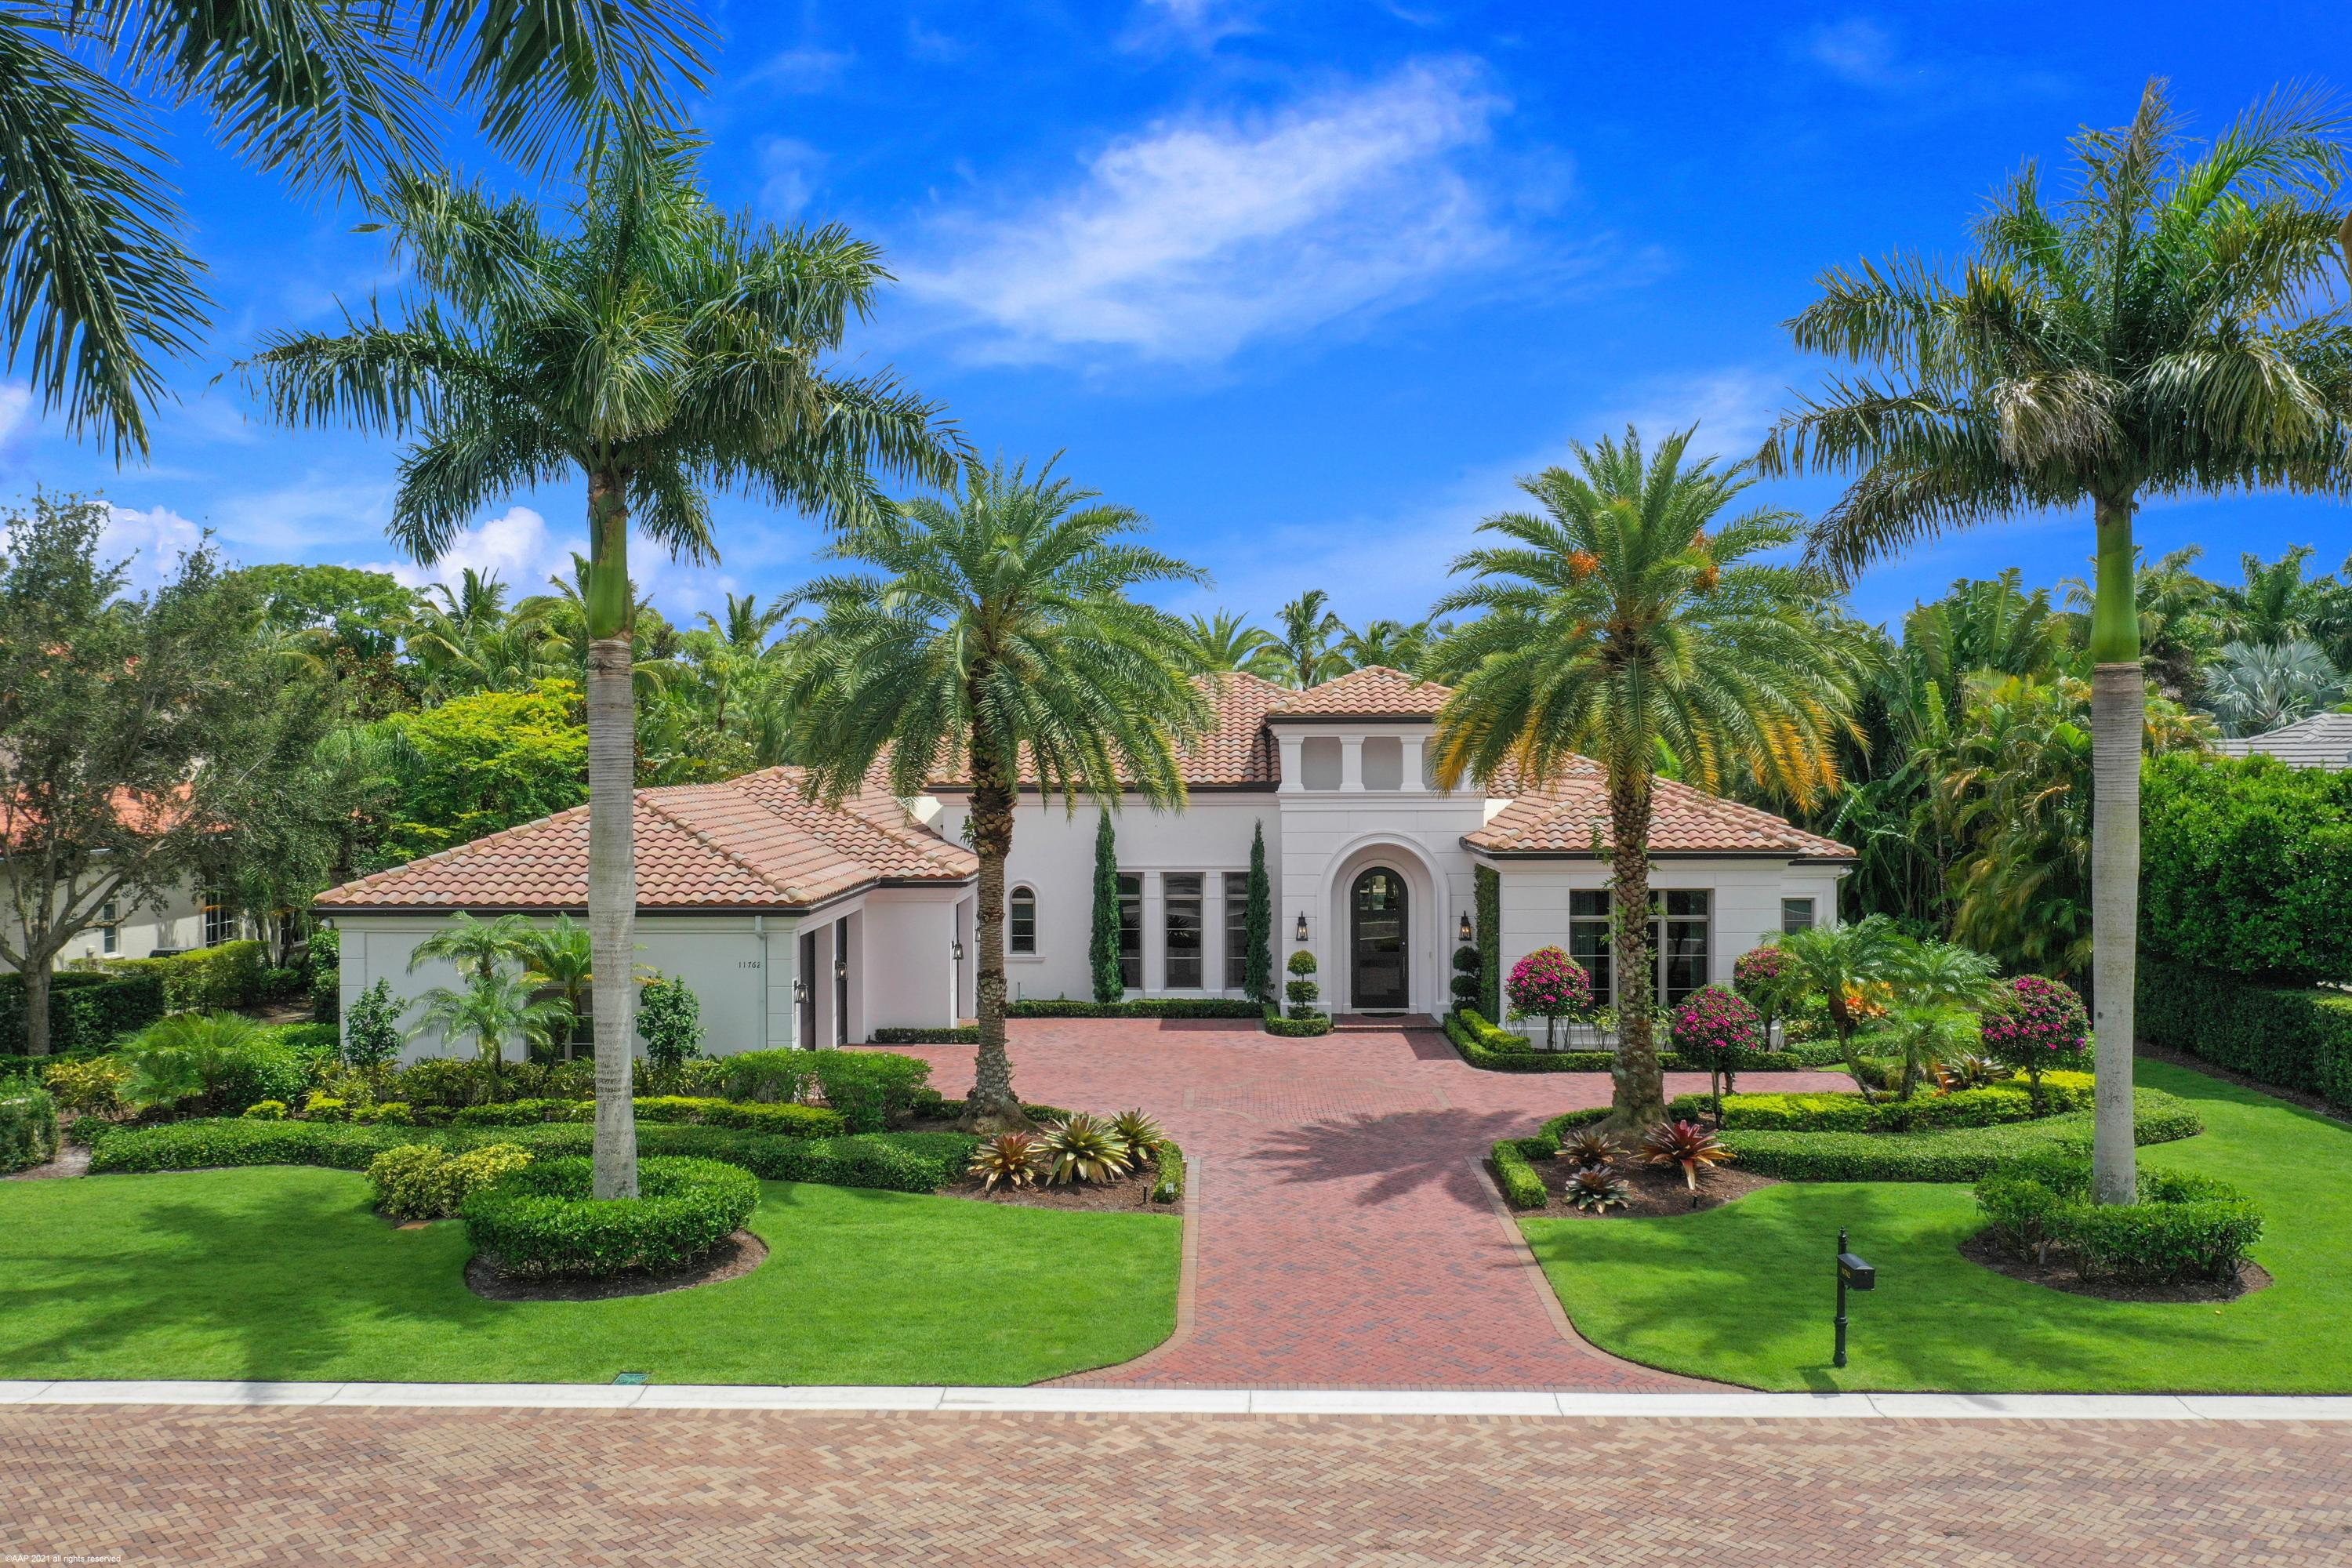 11762  Calla Lilly Court  For Sale 10726213, FL